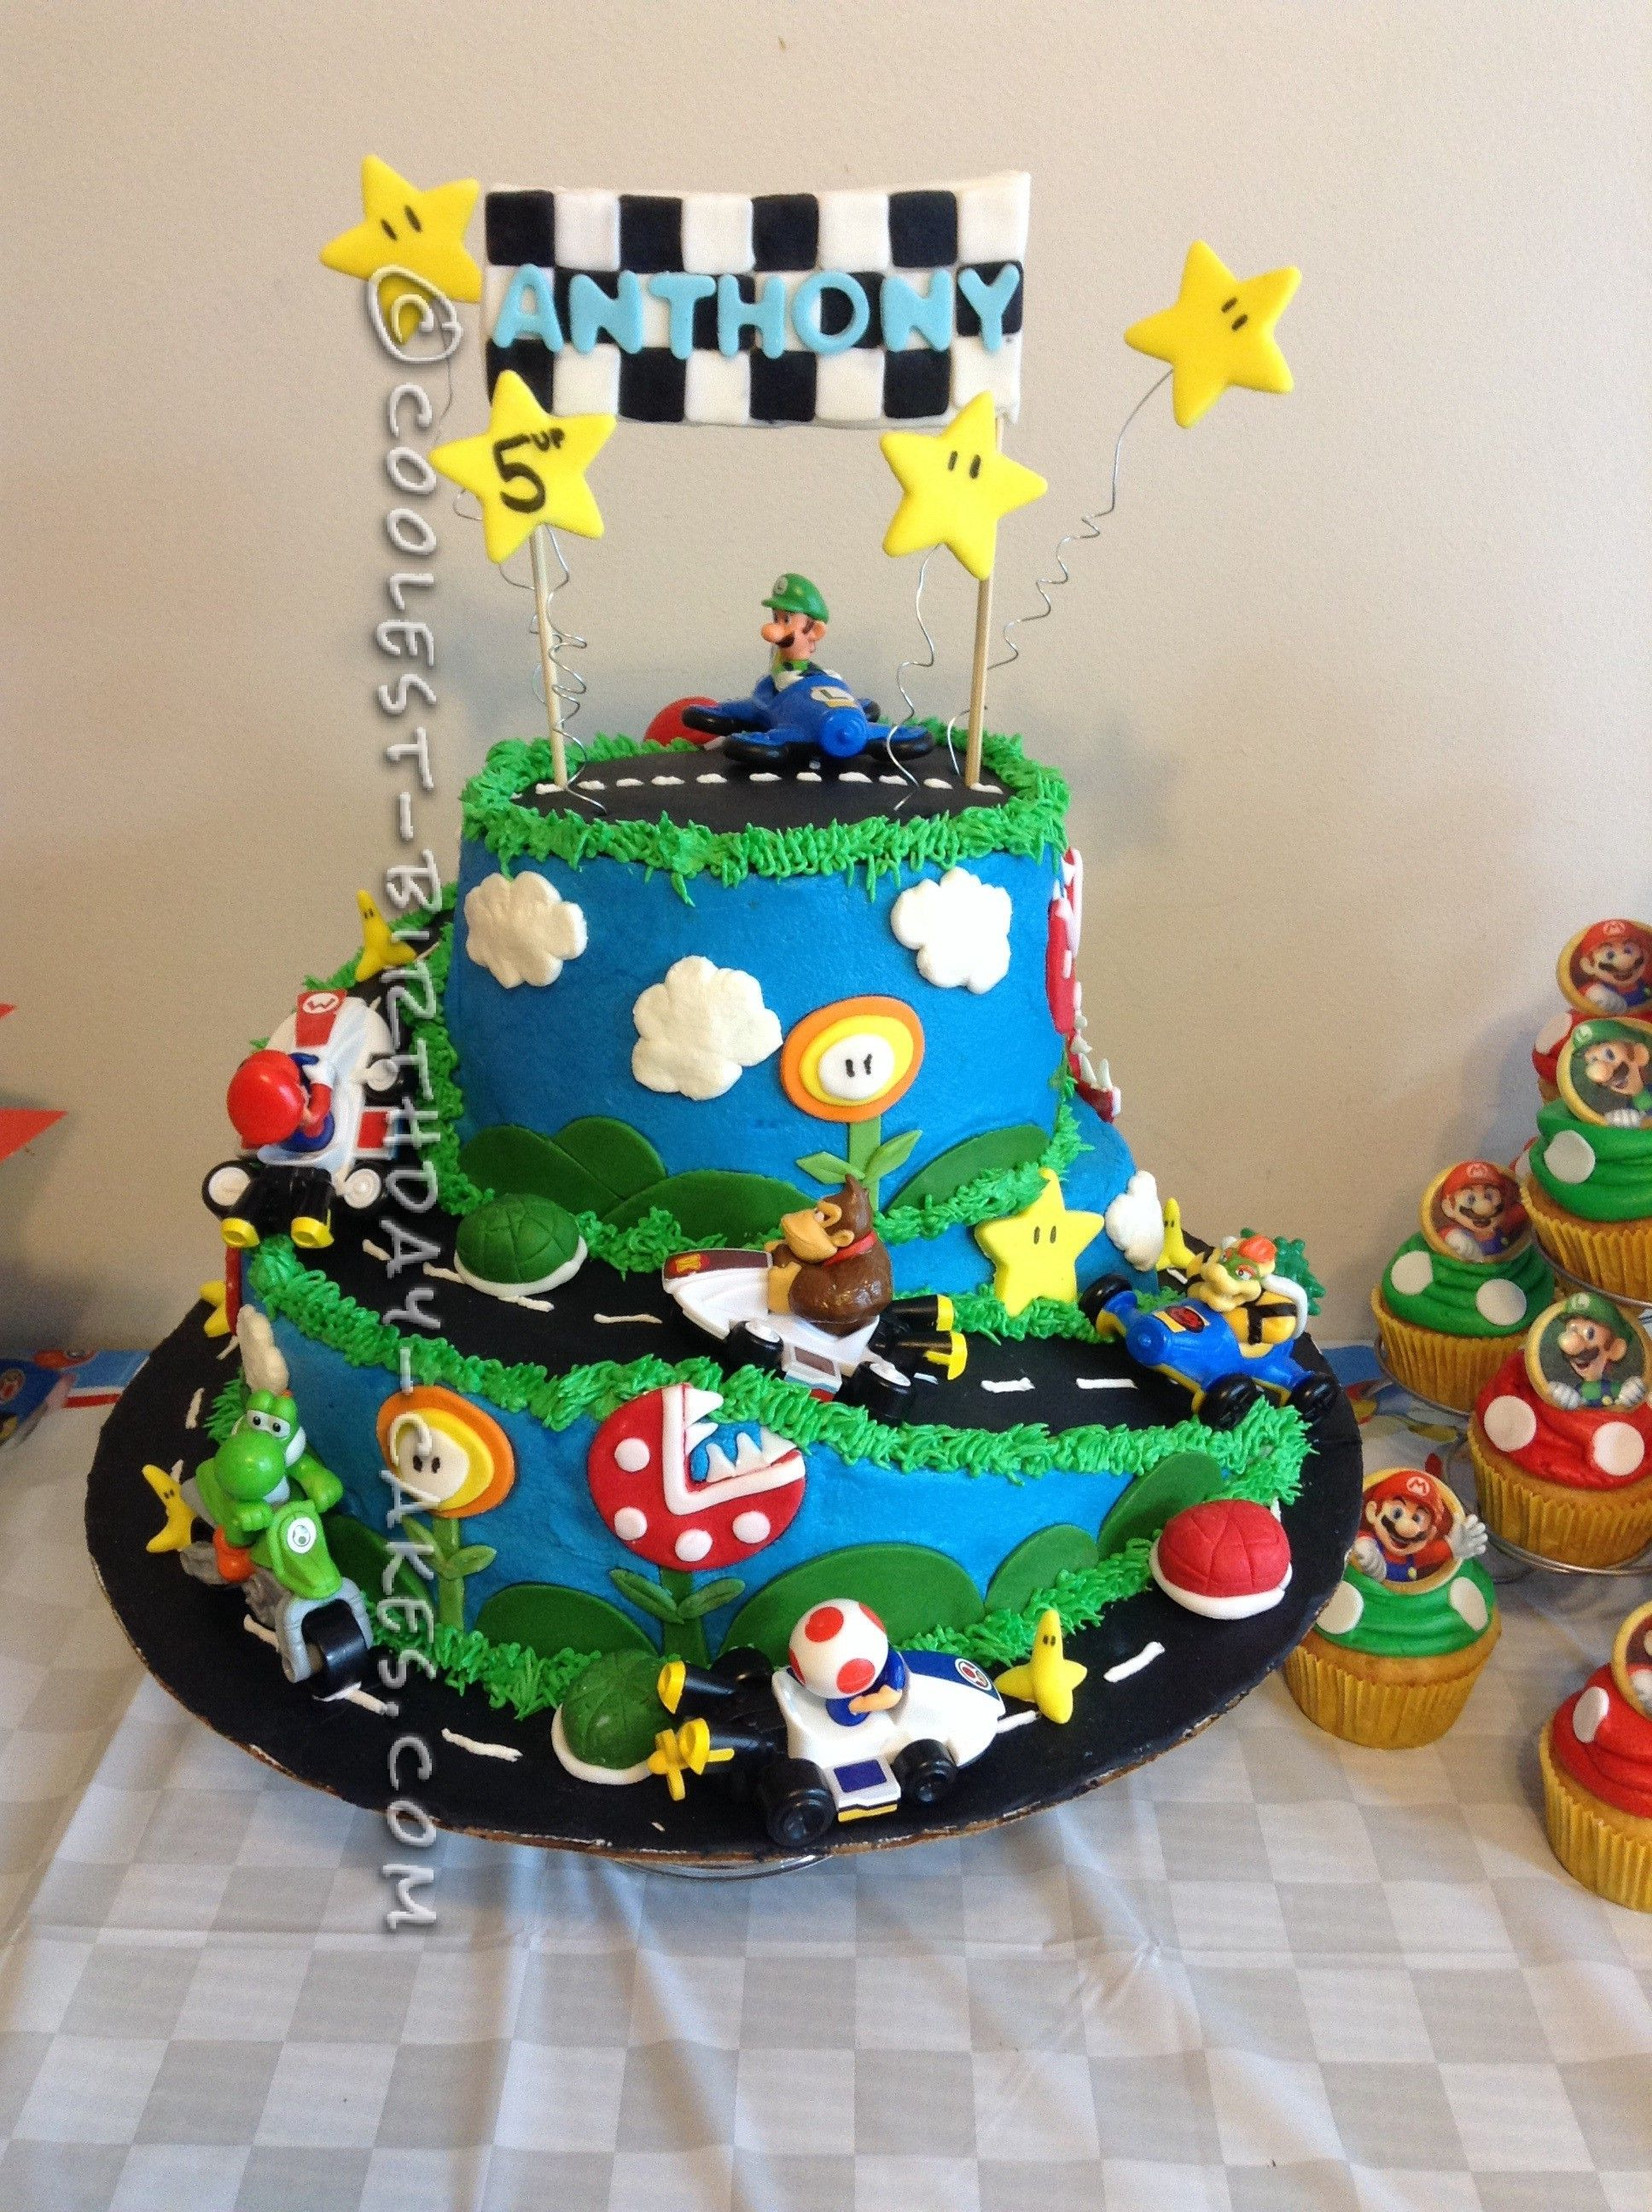 Coolest Mario Kart Wii Birthday Cake Mario kart Wii and Birthday